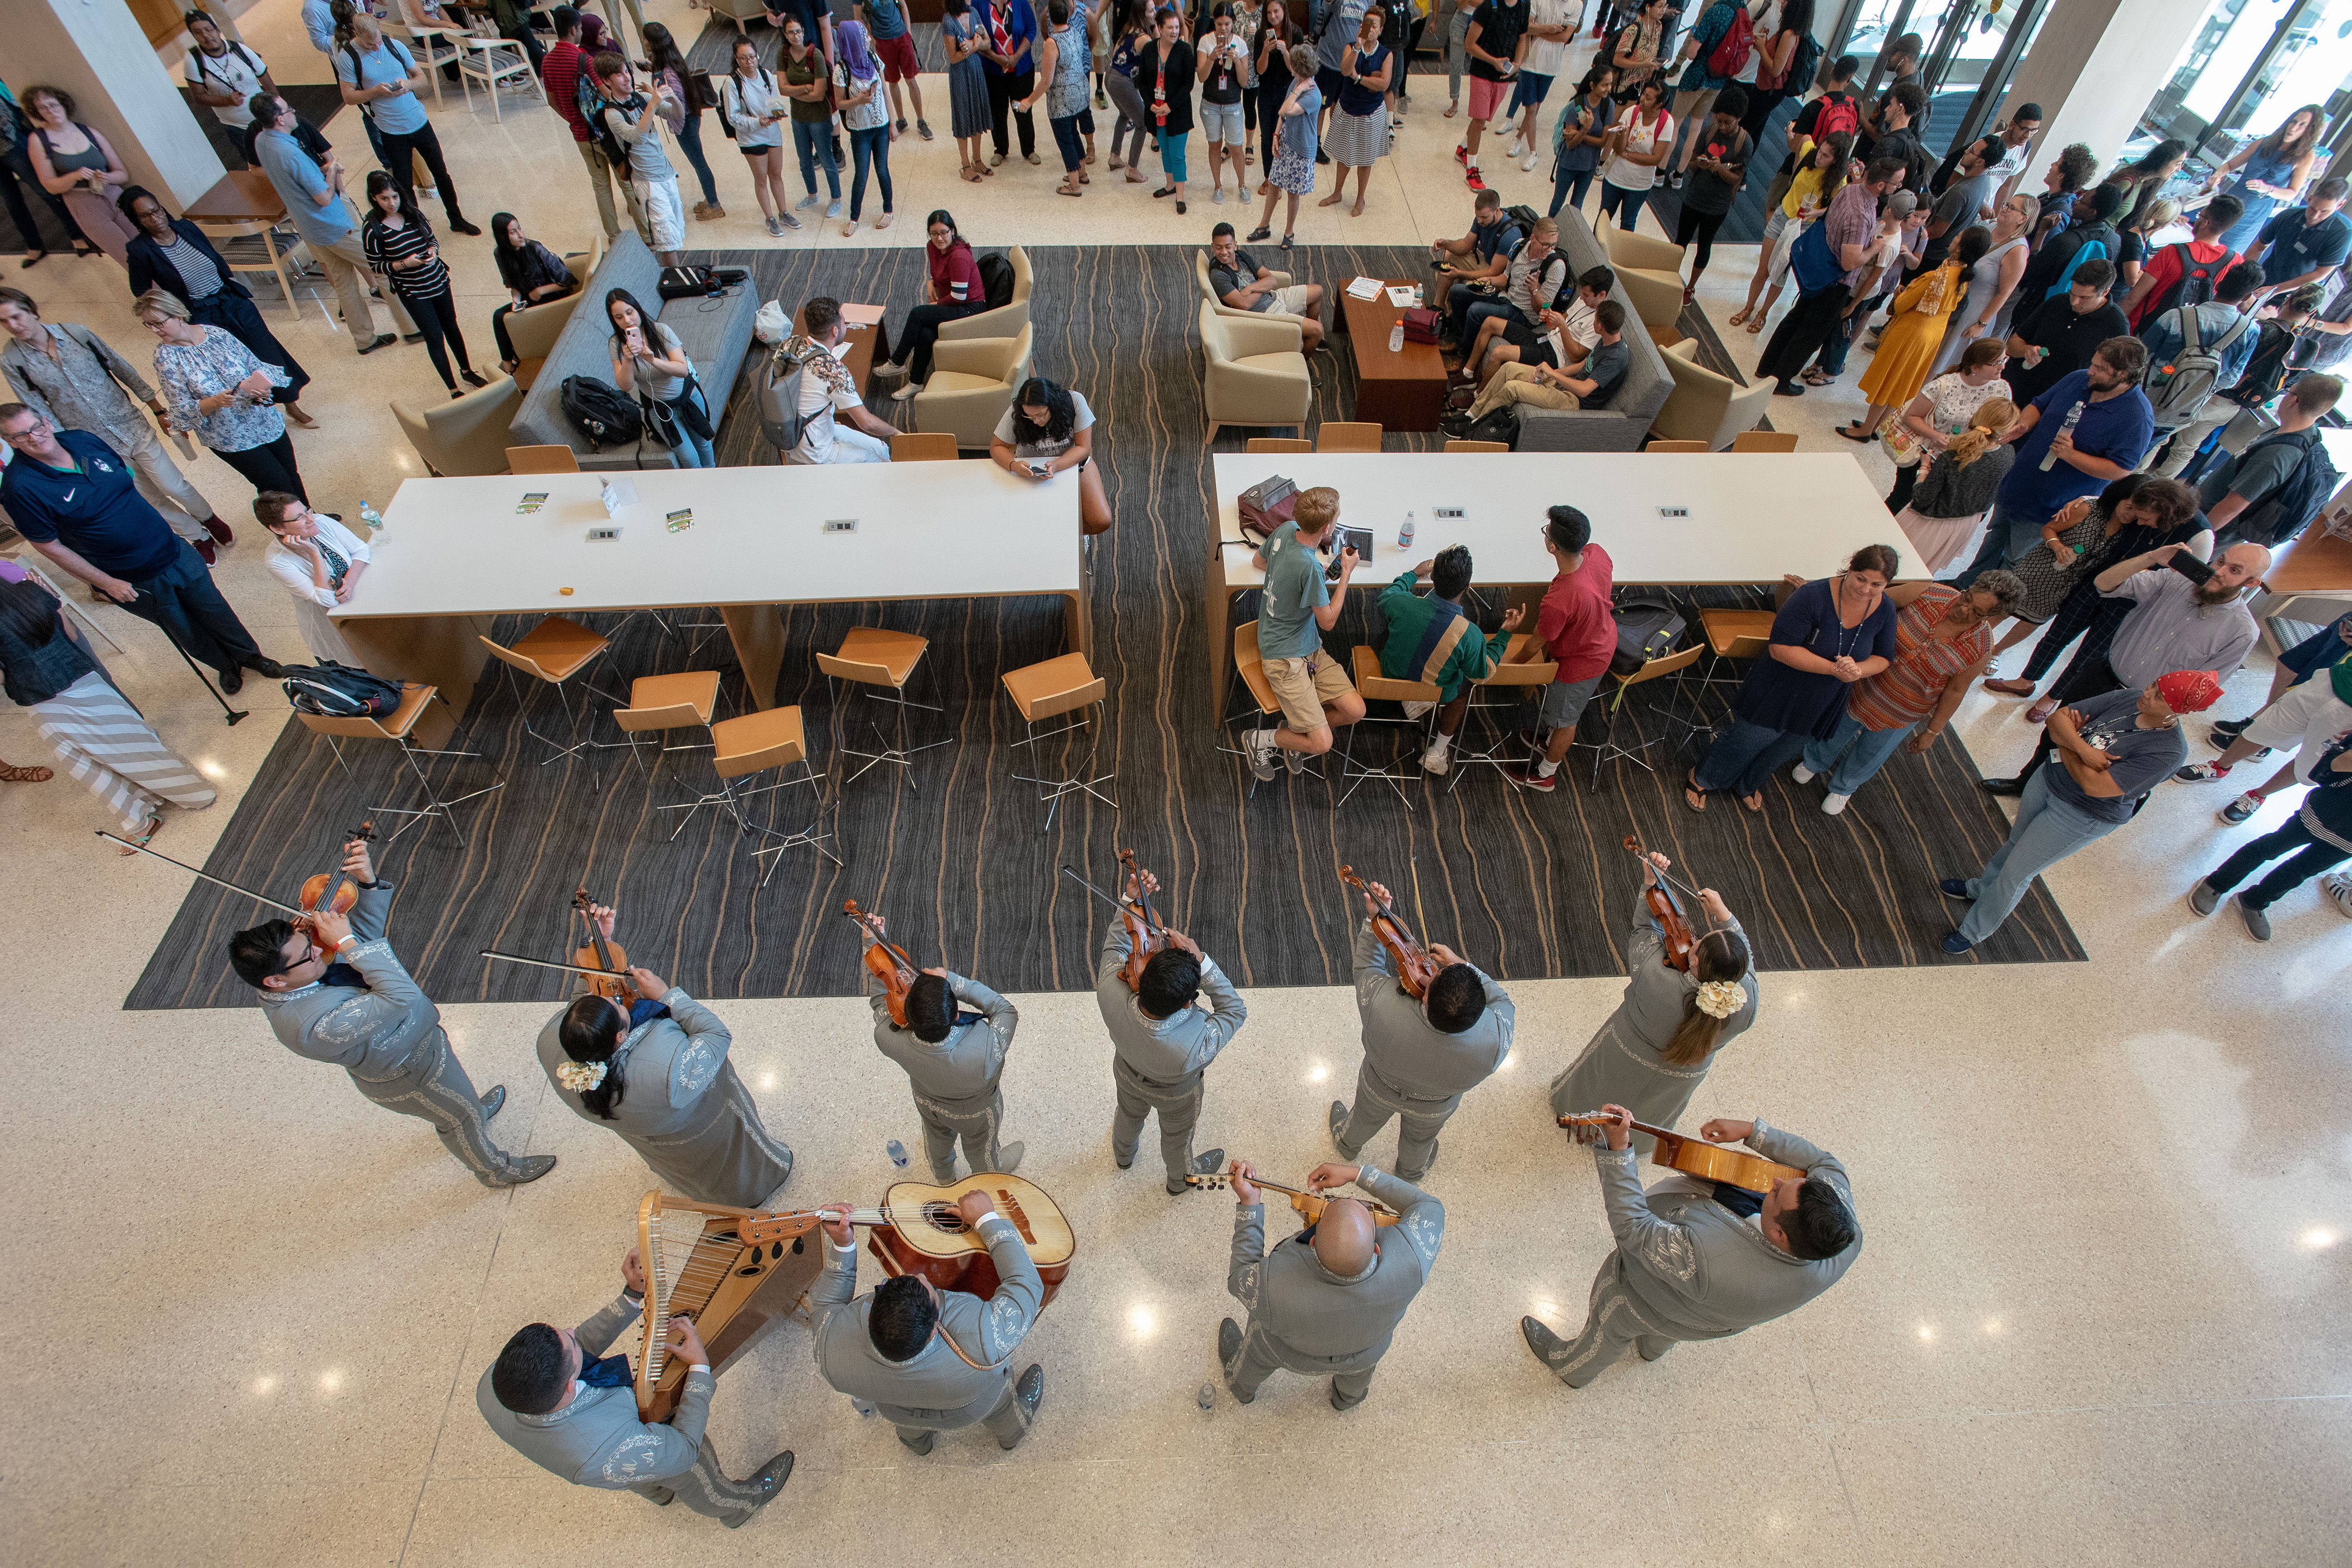 Students, faculty, and staff listen to the Mariachi Mexico Antiguo Band during the Hartford Campus Convocation Celebration in Mortensen Courtyard (atrium) on Aug. 29, 2018. (Sean Flynn/UConn Photo)